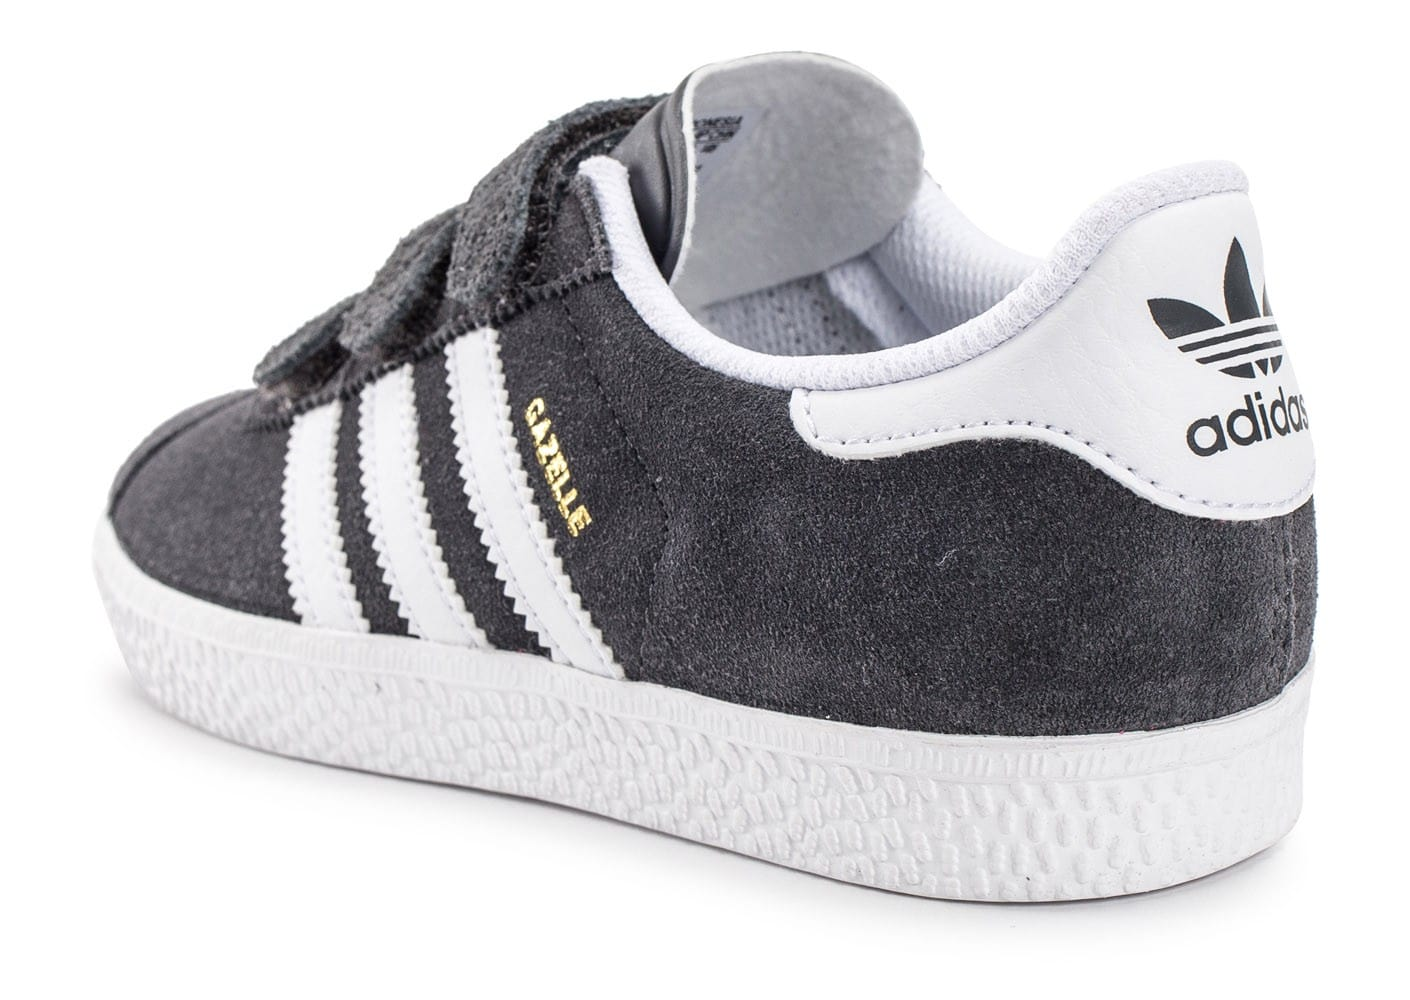 competitive price 94981 98476 Adidas Gazelle 2 Chausport Enfant Chaussures Cf Grise 8OHpr8x